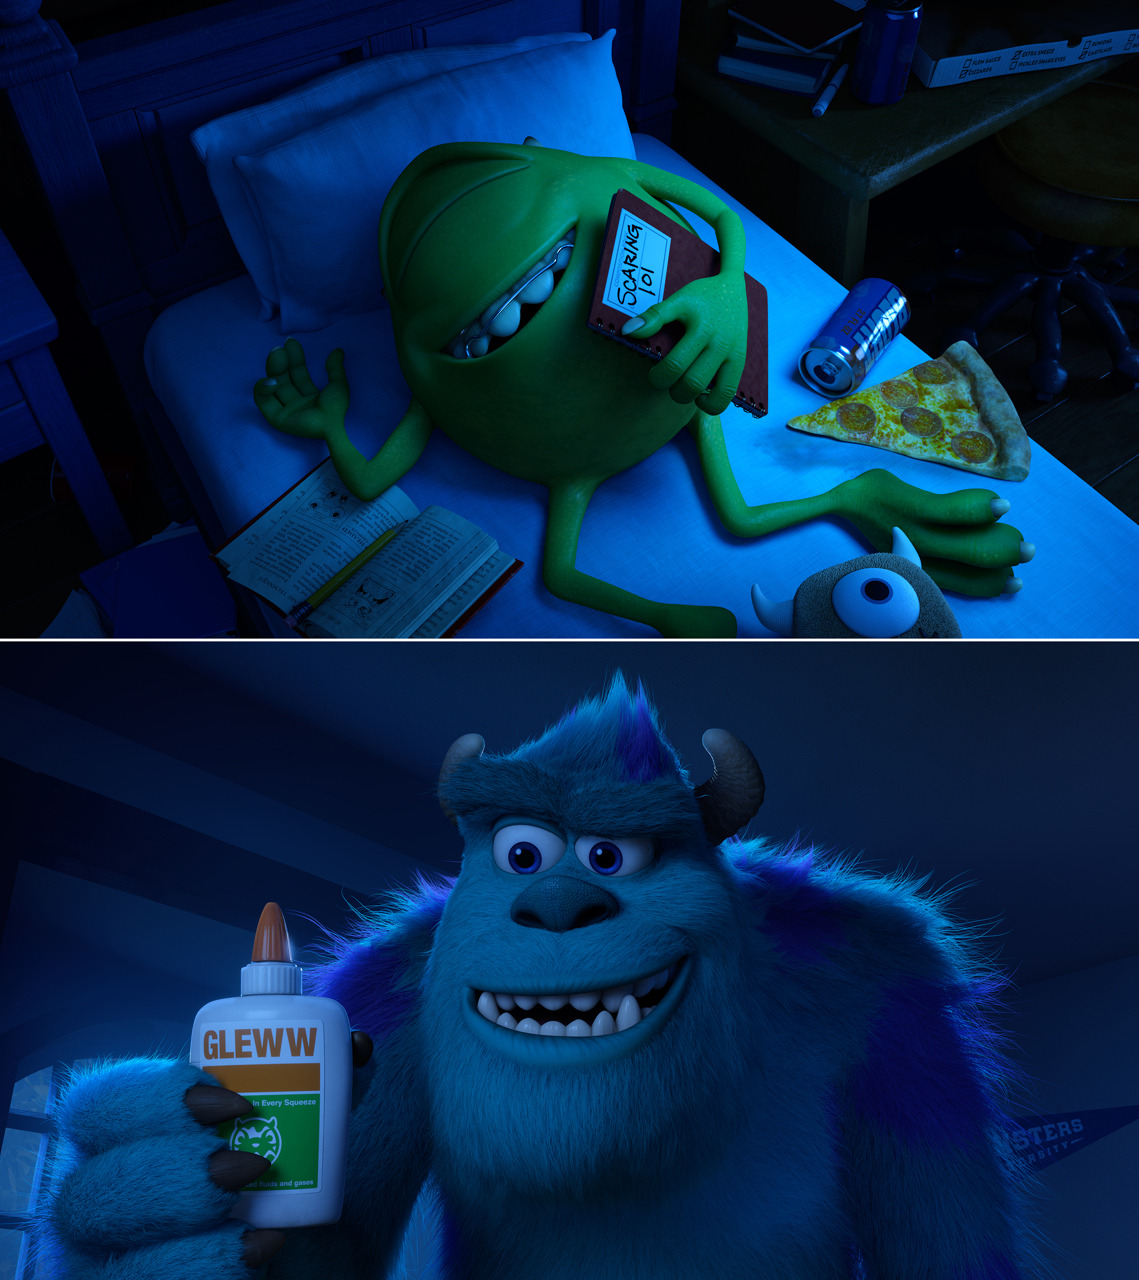 Monsters University GLEWW! Adorable!